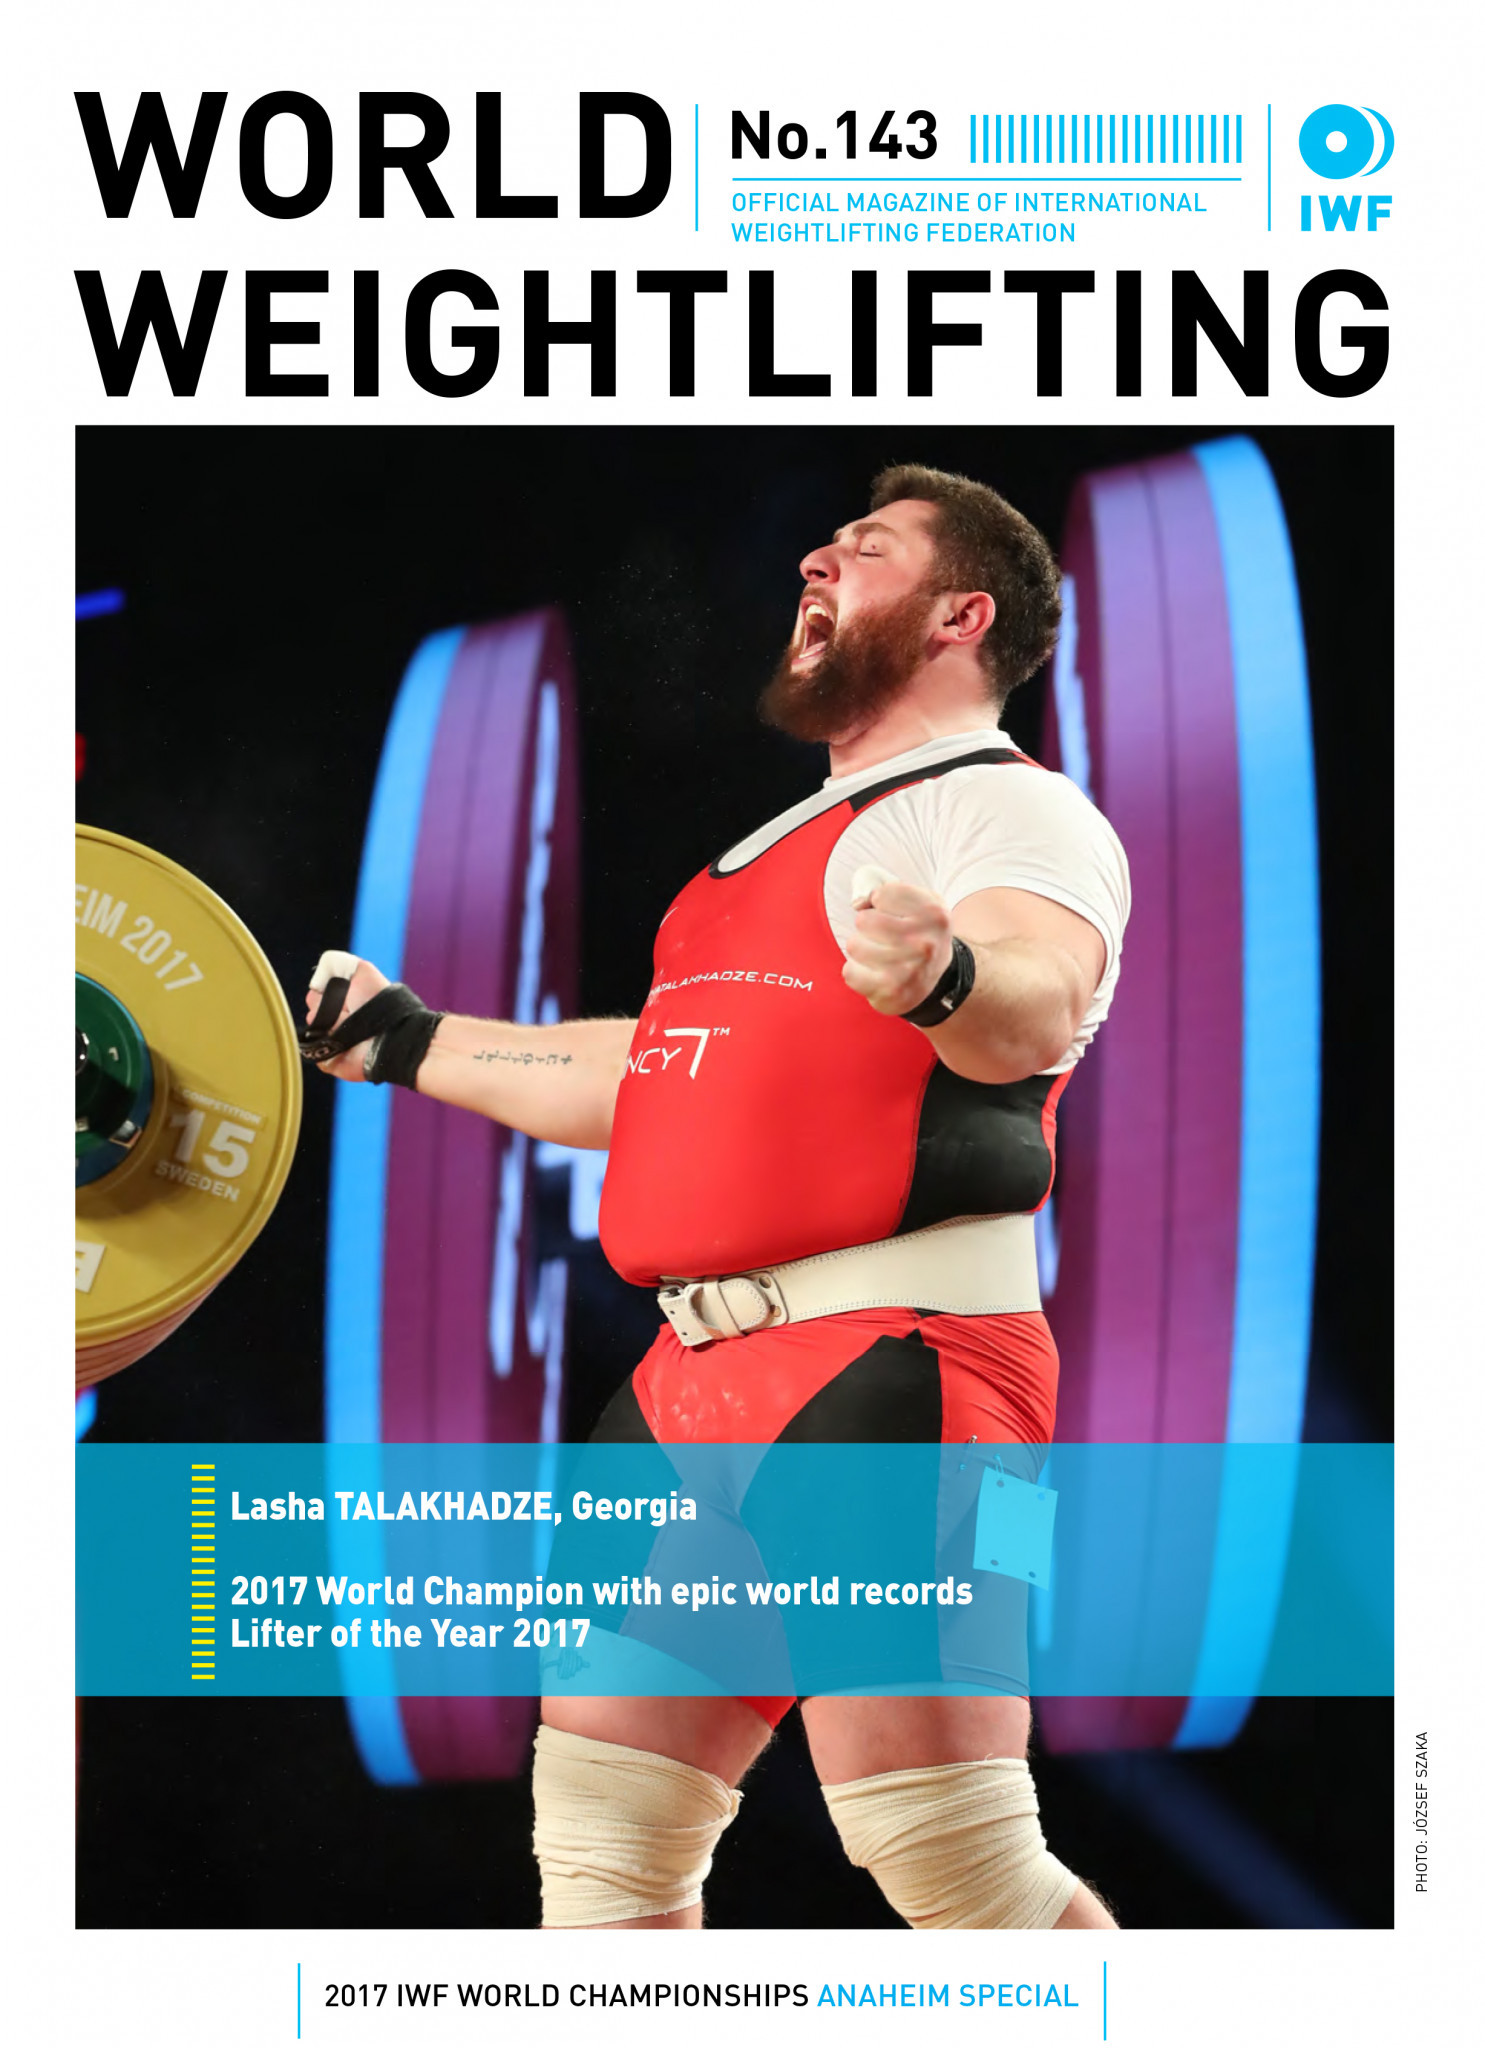 World Weightlifting Magazine No. 143